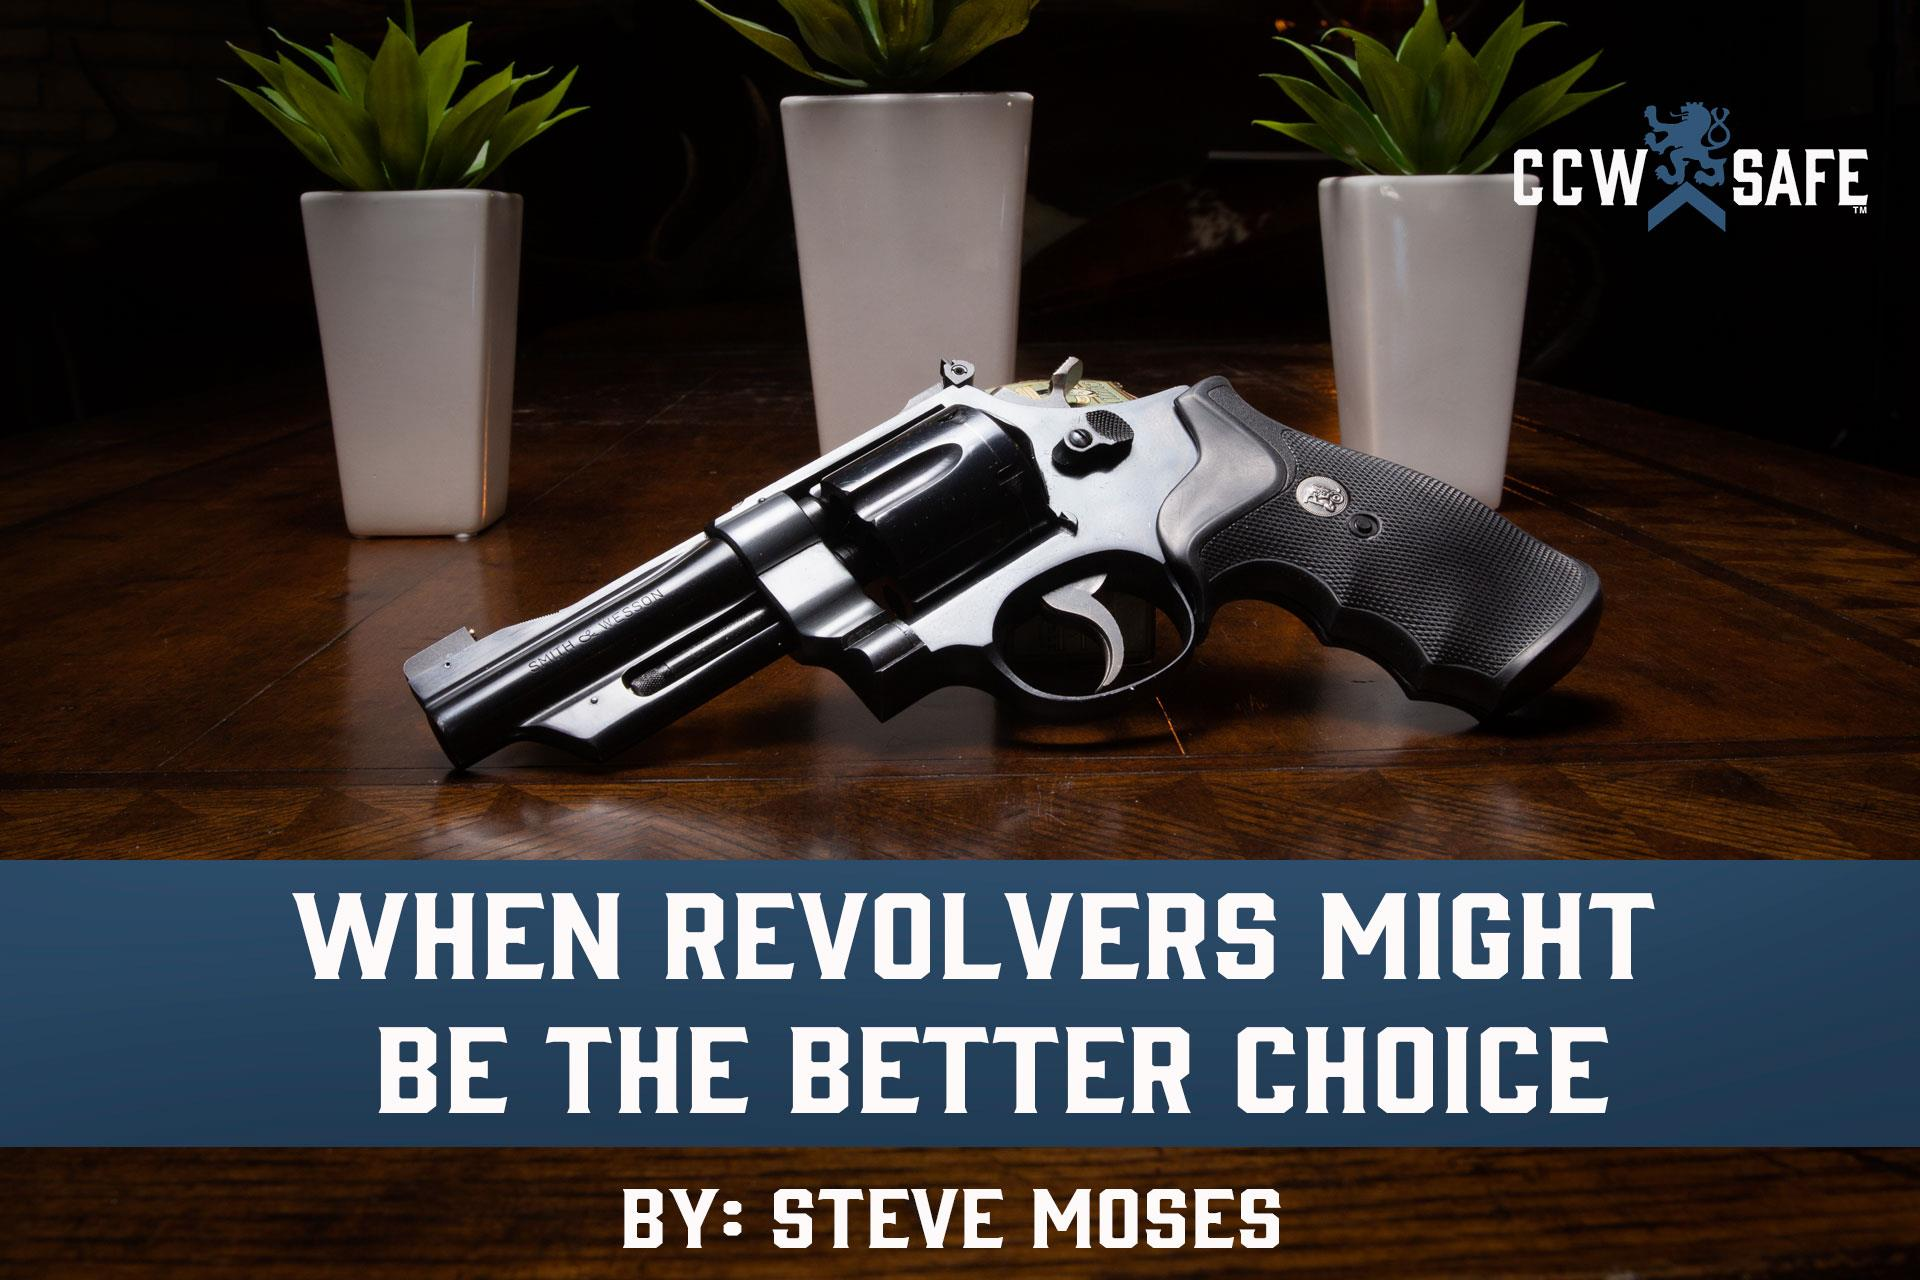 WHEN REVOLVERS MIGHT BE THE BETTER CHOICE